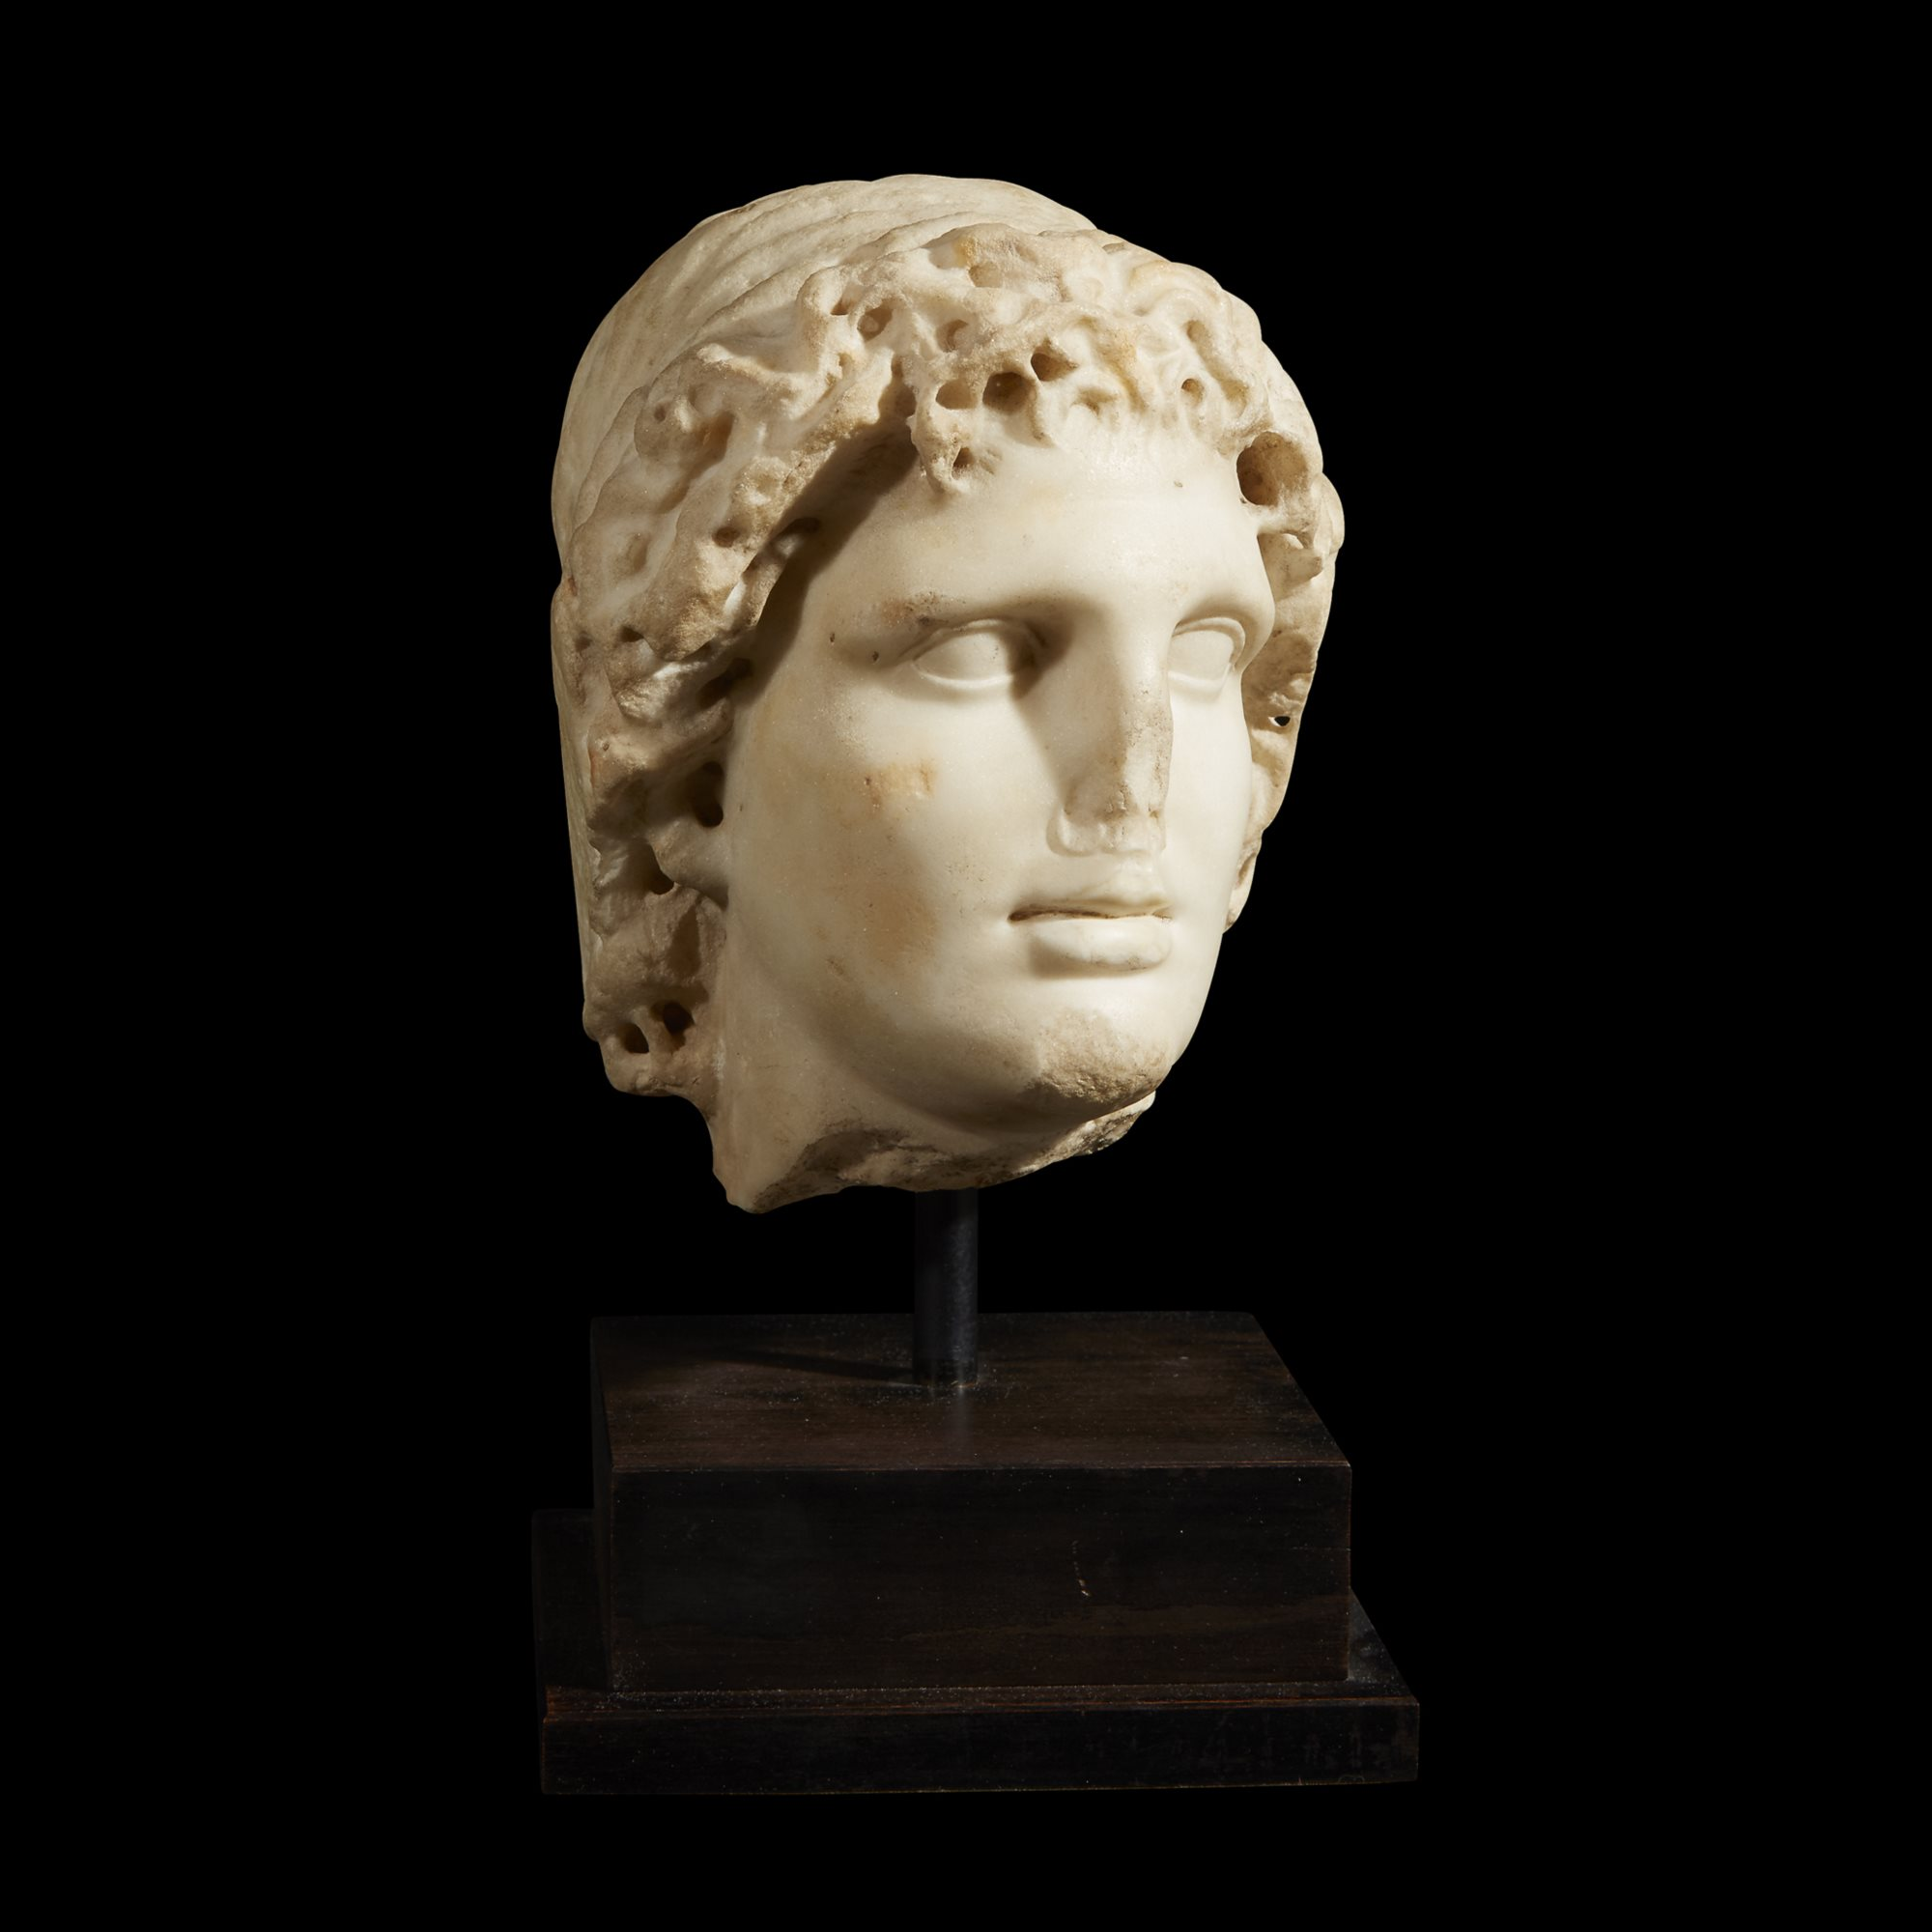 Roman Head of Alexander the Great as Helios, c. 2nd Century AD, Sold for $62,500